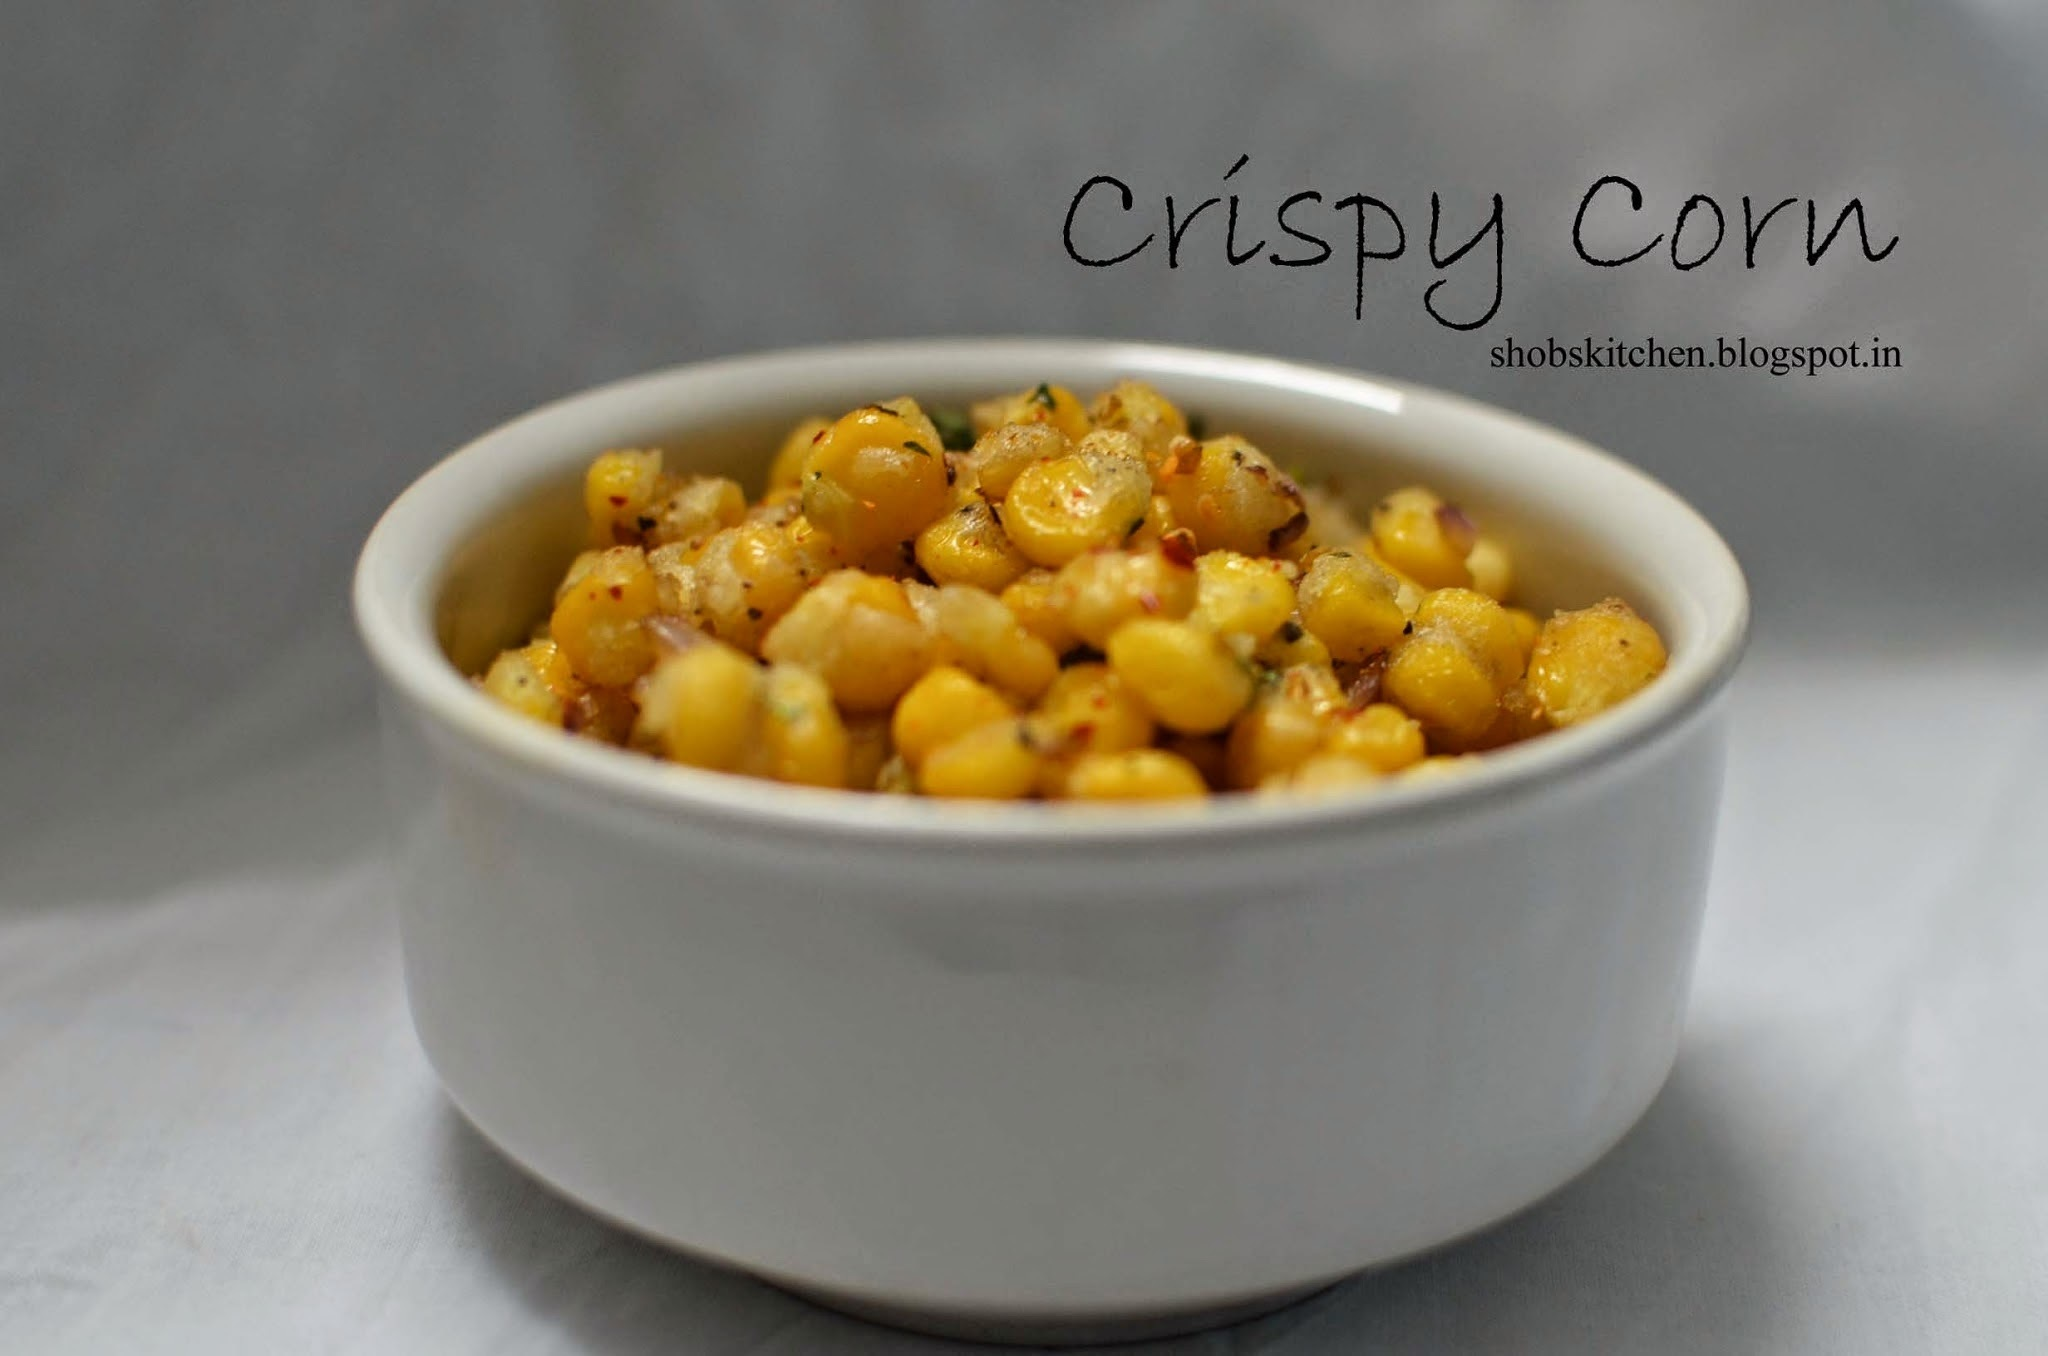 Spiced Crispy Corn